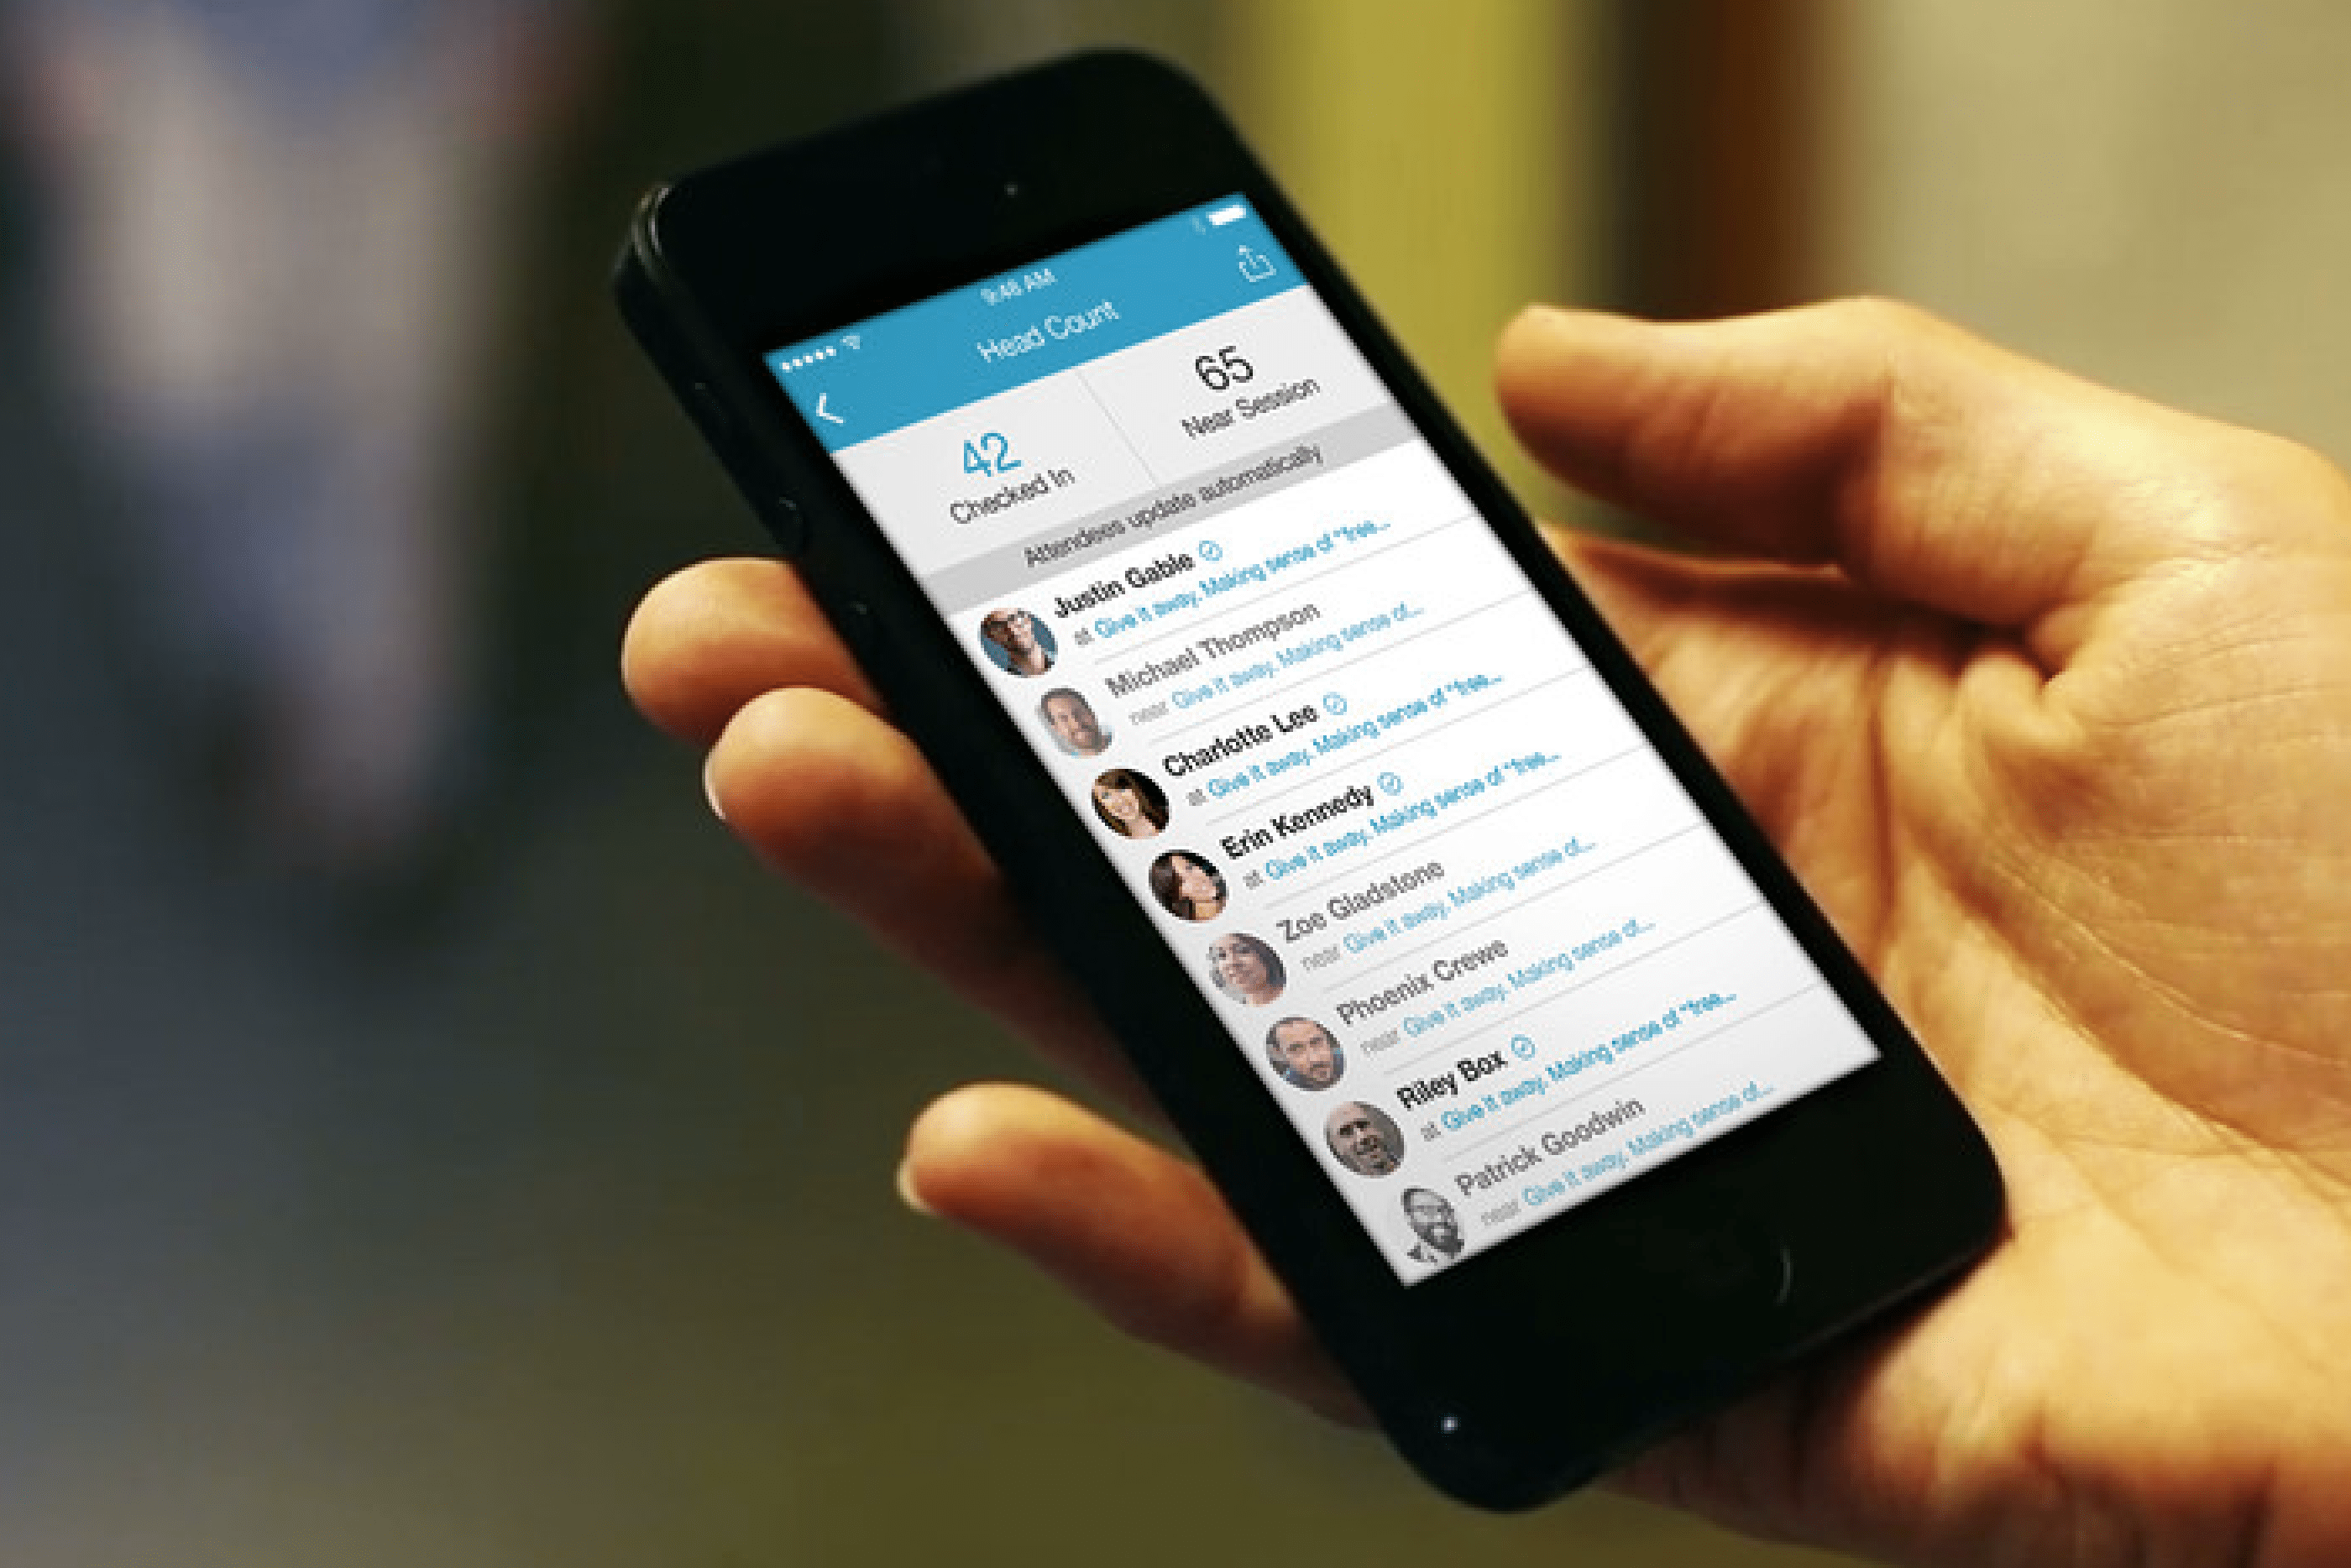 DoubleDutch creates mobile apps for live events, and turned to ServiceRocket to help its sales and customer service.